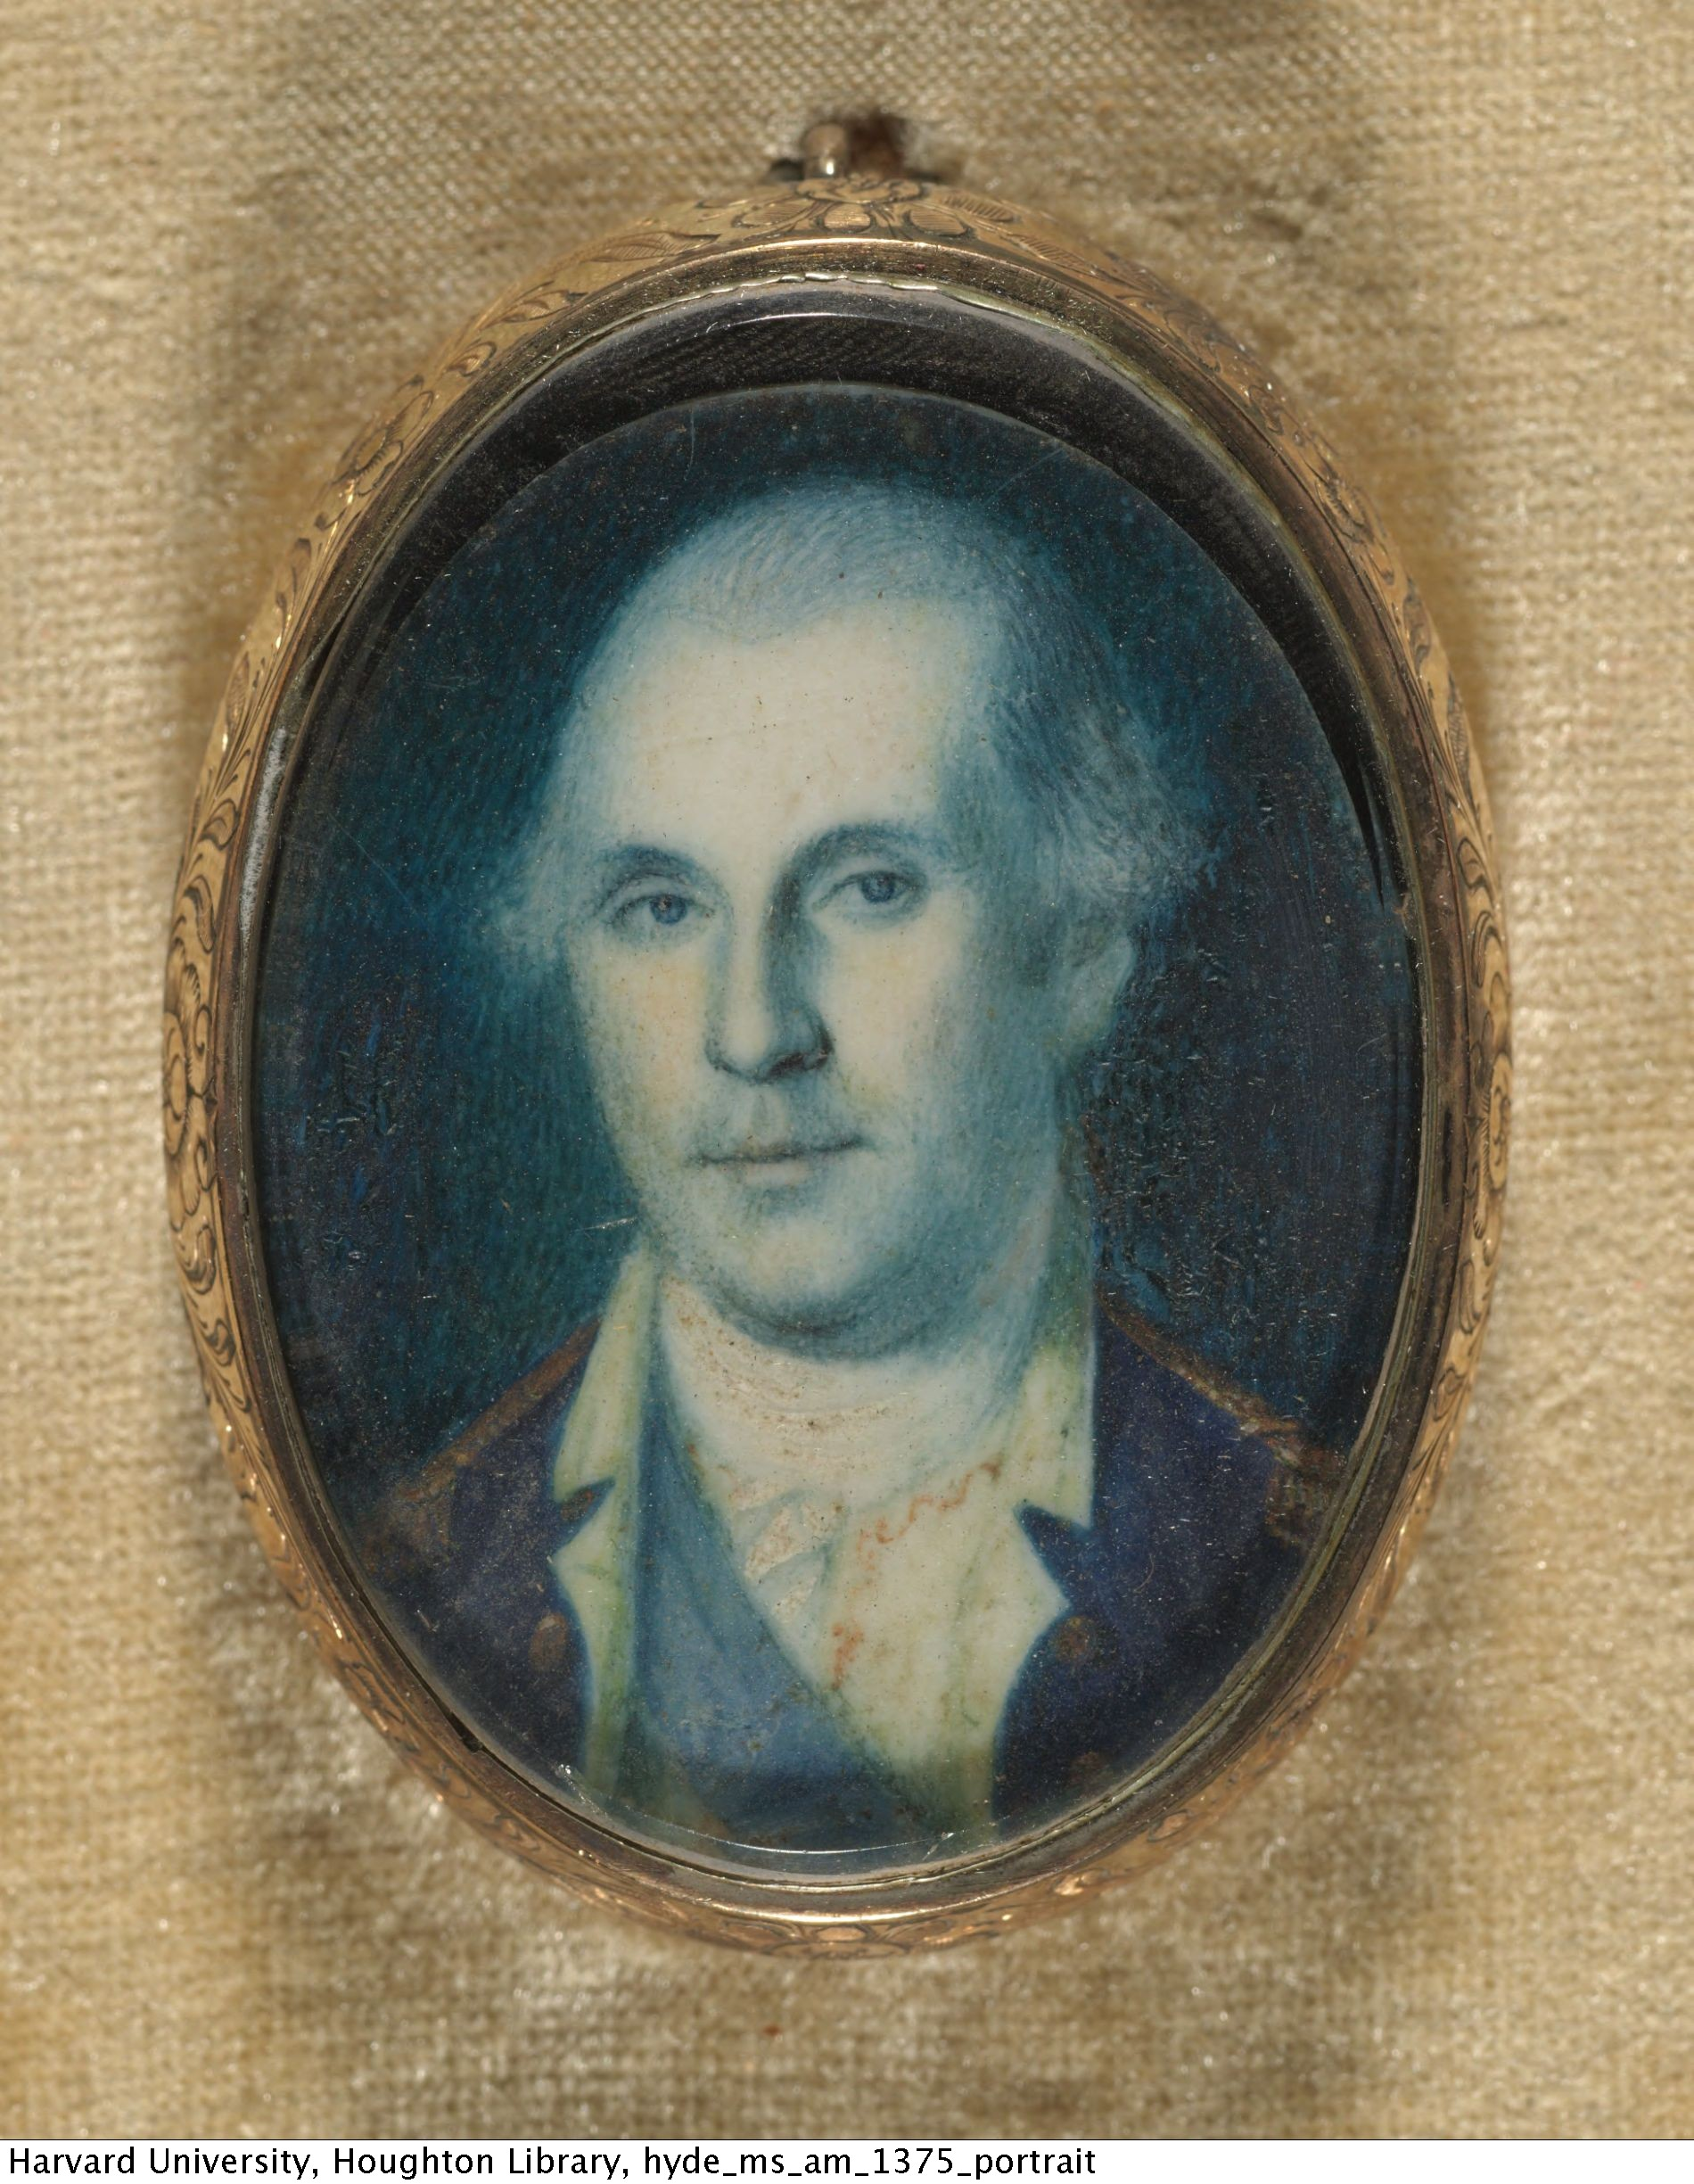 Peale, Charles Willson, 1741-1827, artist. Portrait of George Washington, [ca. 1775] MS Am 1375